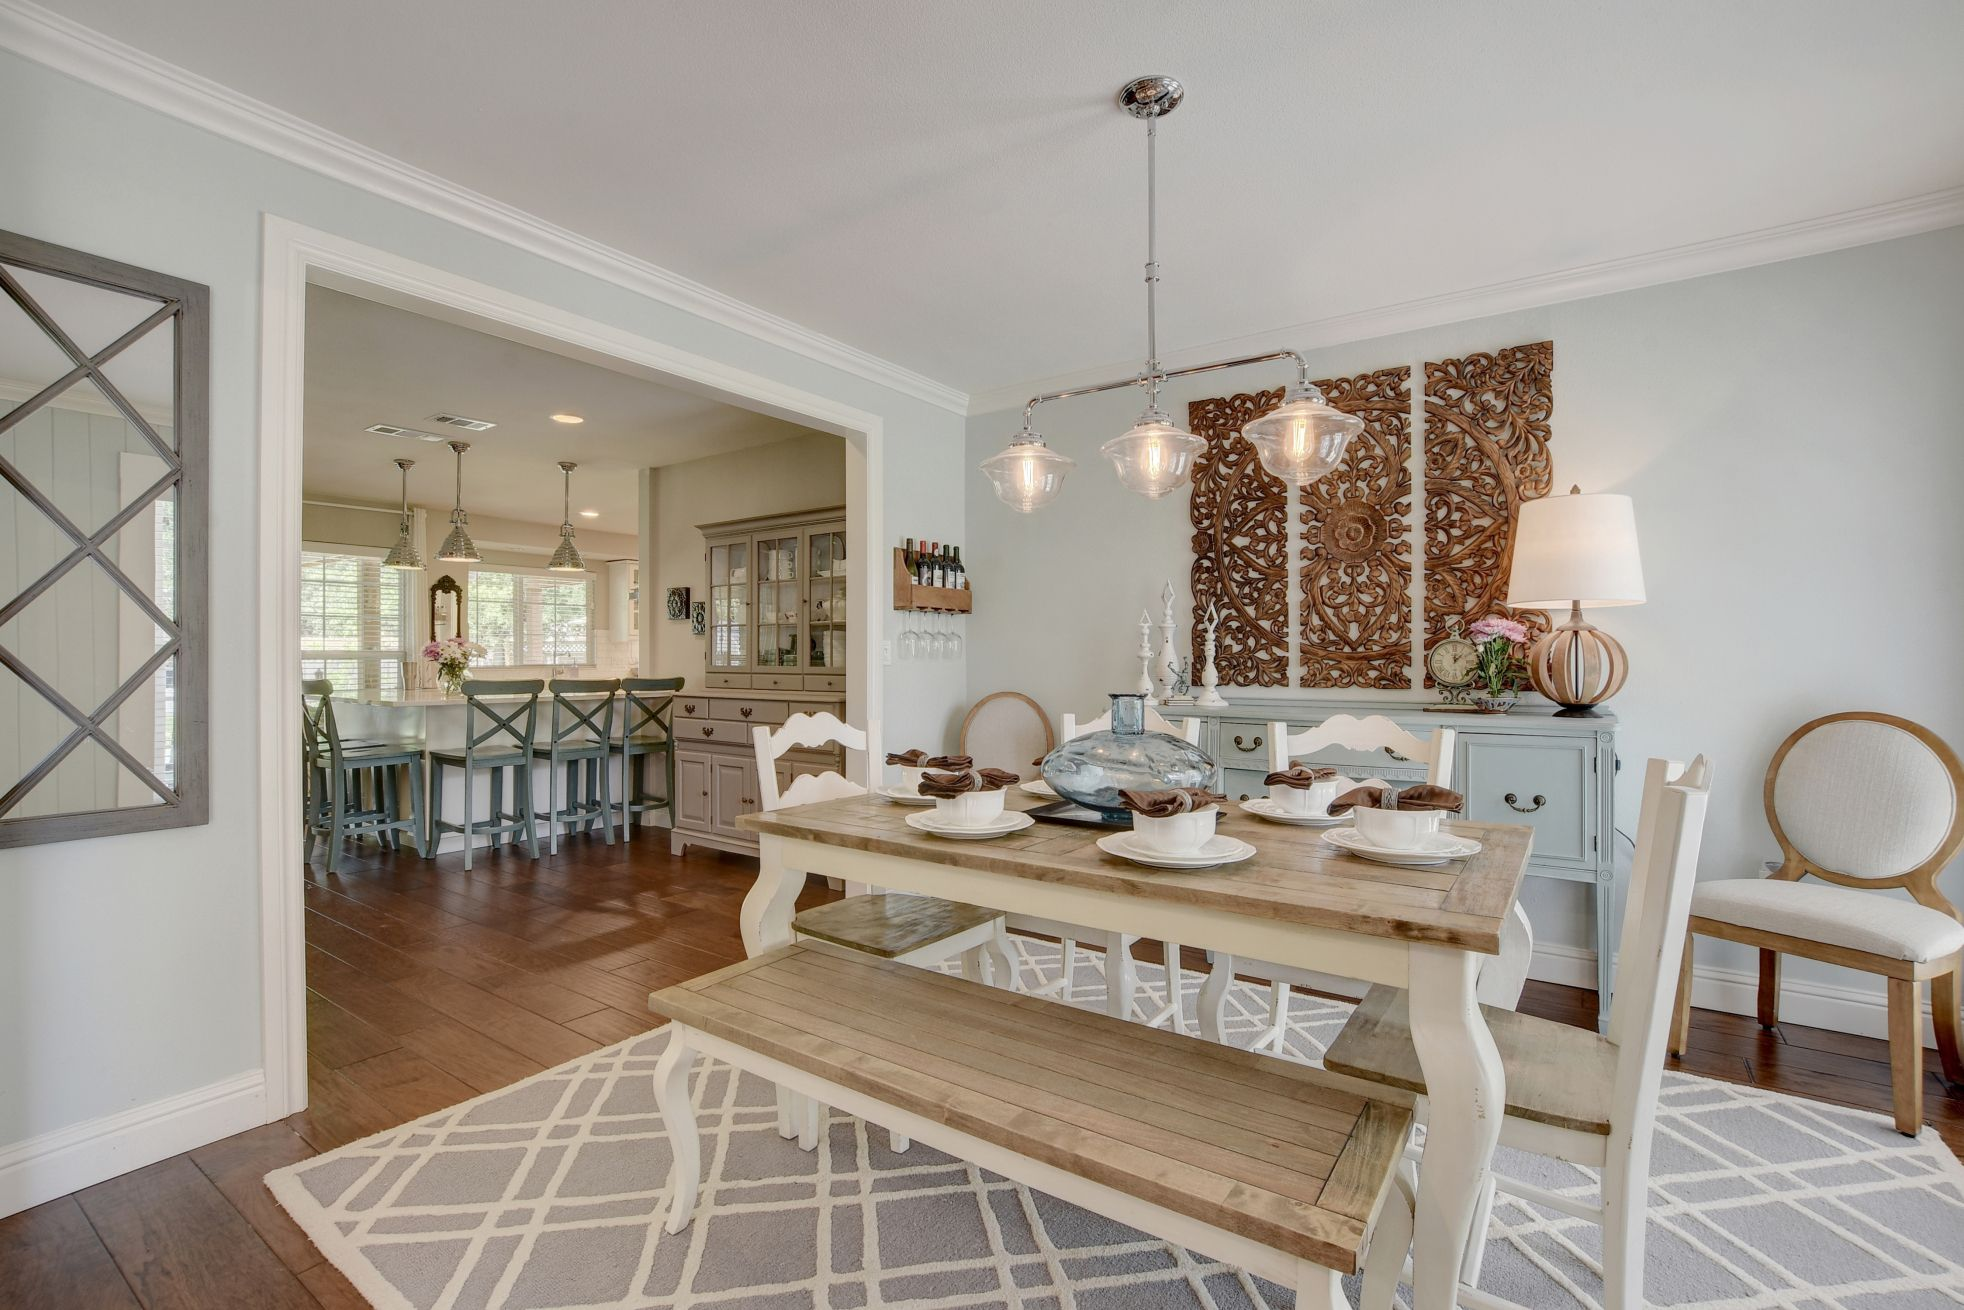 Open Floor Plan Formal Dining Room Sherwin Williams Sea Salt Painted Walls With Benjamin Moore White Do Dining Room Remodel Formal Dining Room Room Remodeling #sea #salt #living #room